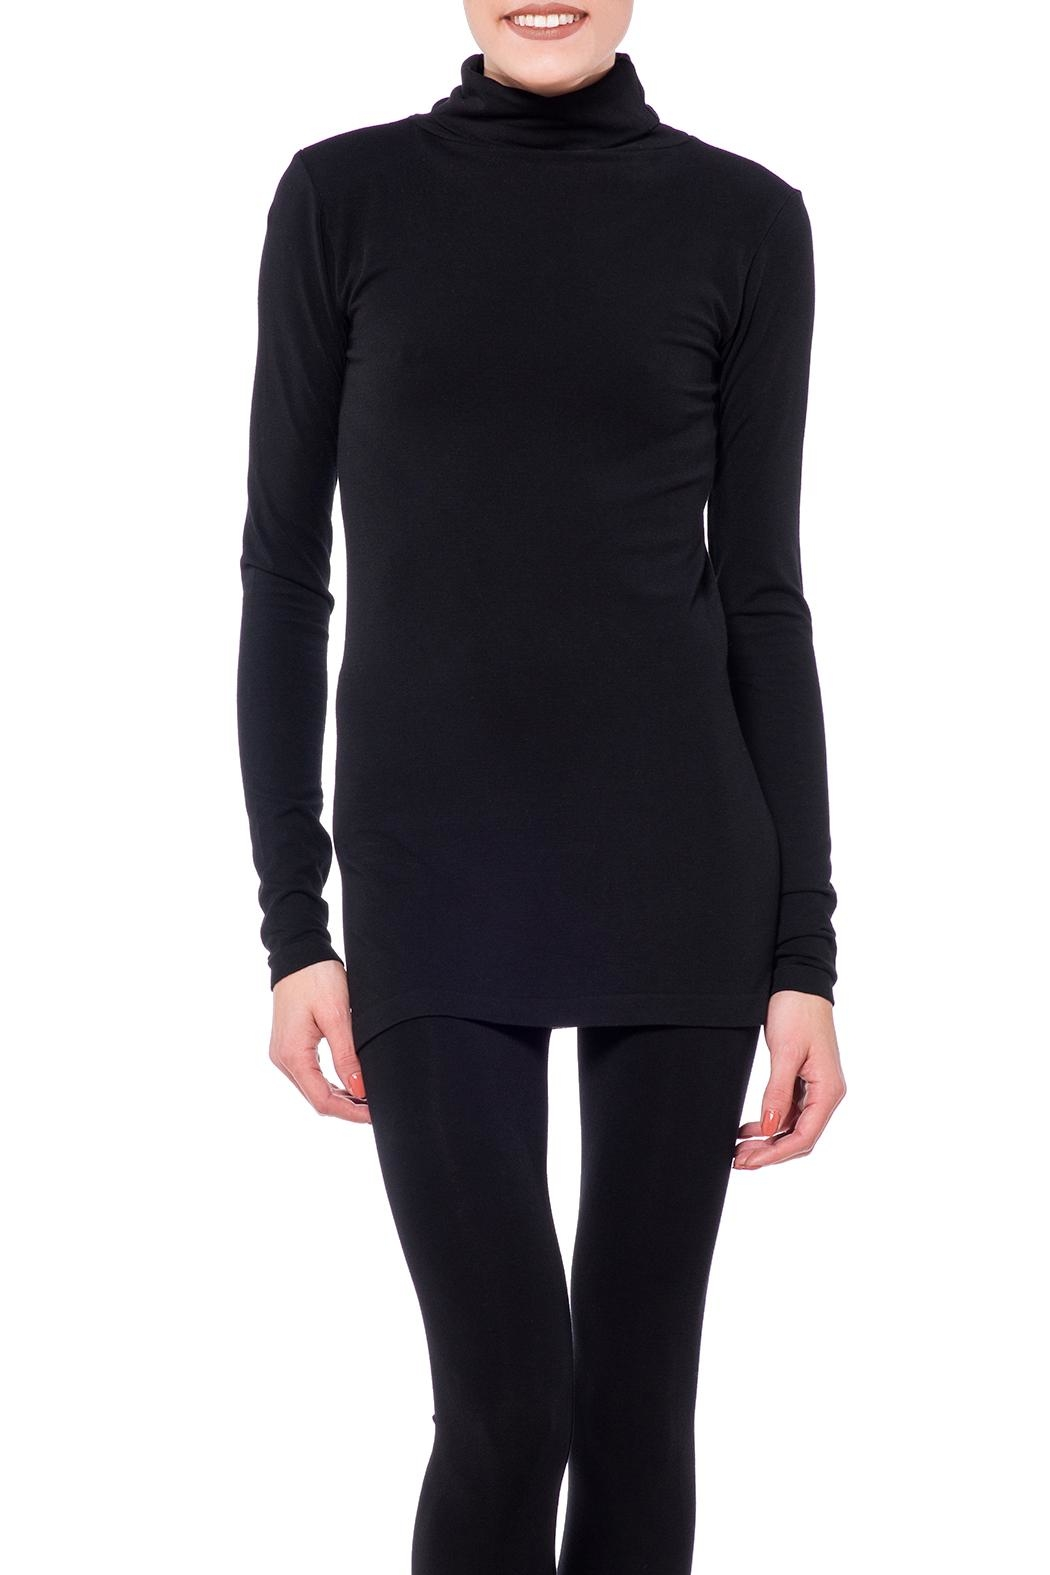 Cest Moi Bamboo High Neck Top - Front Cropped Image